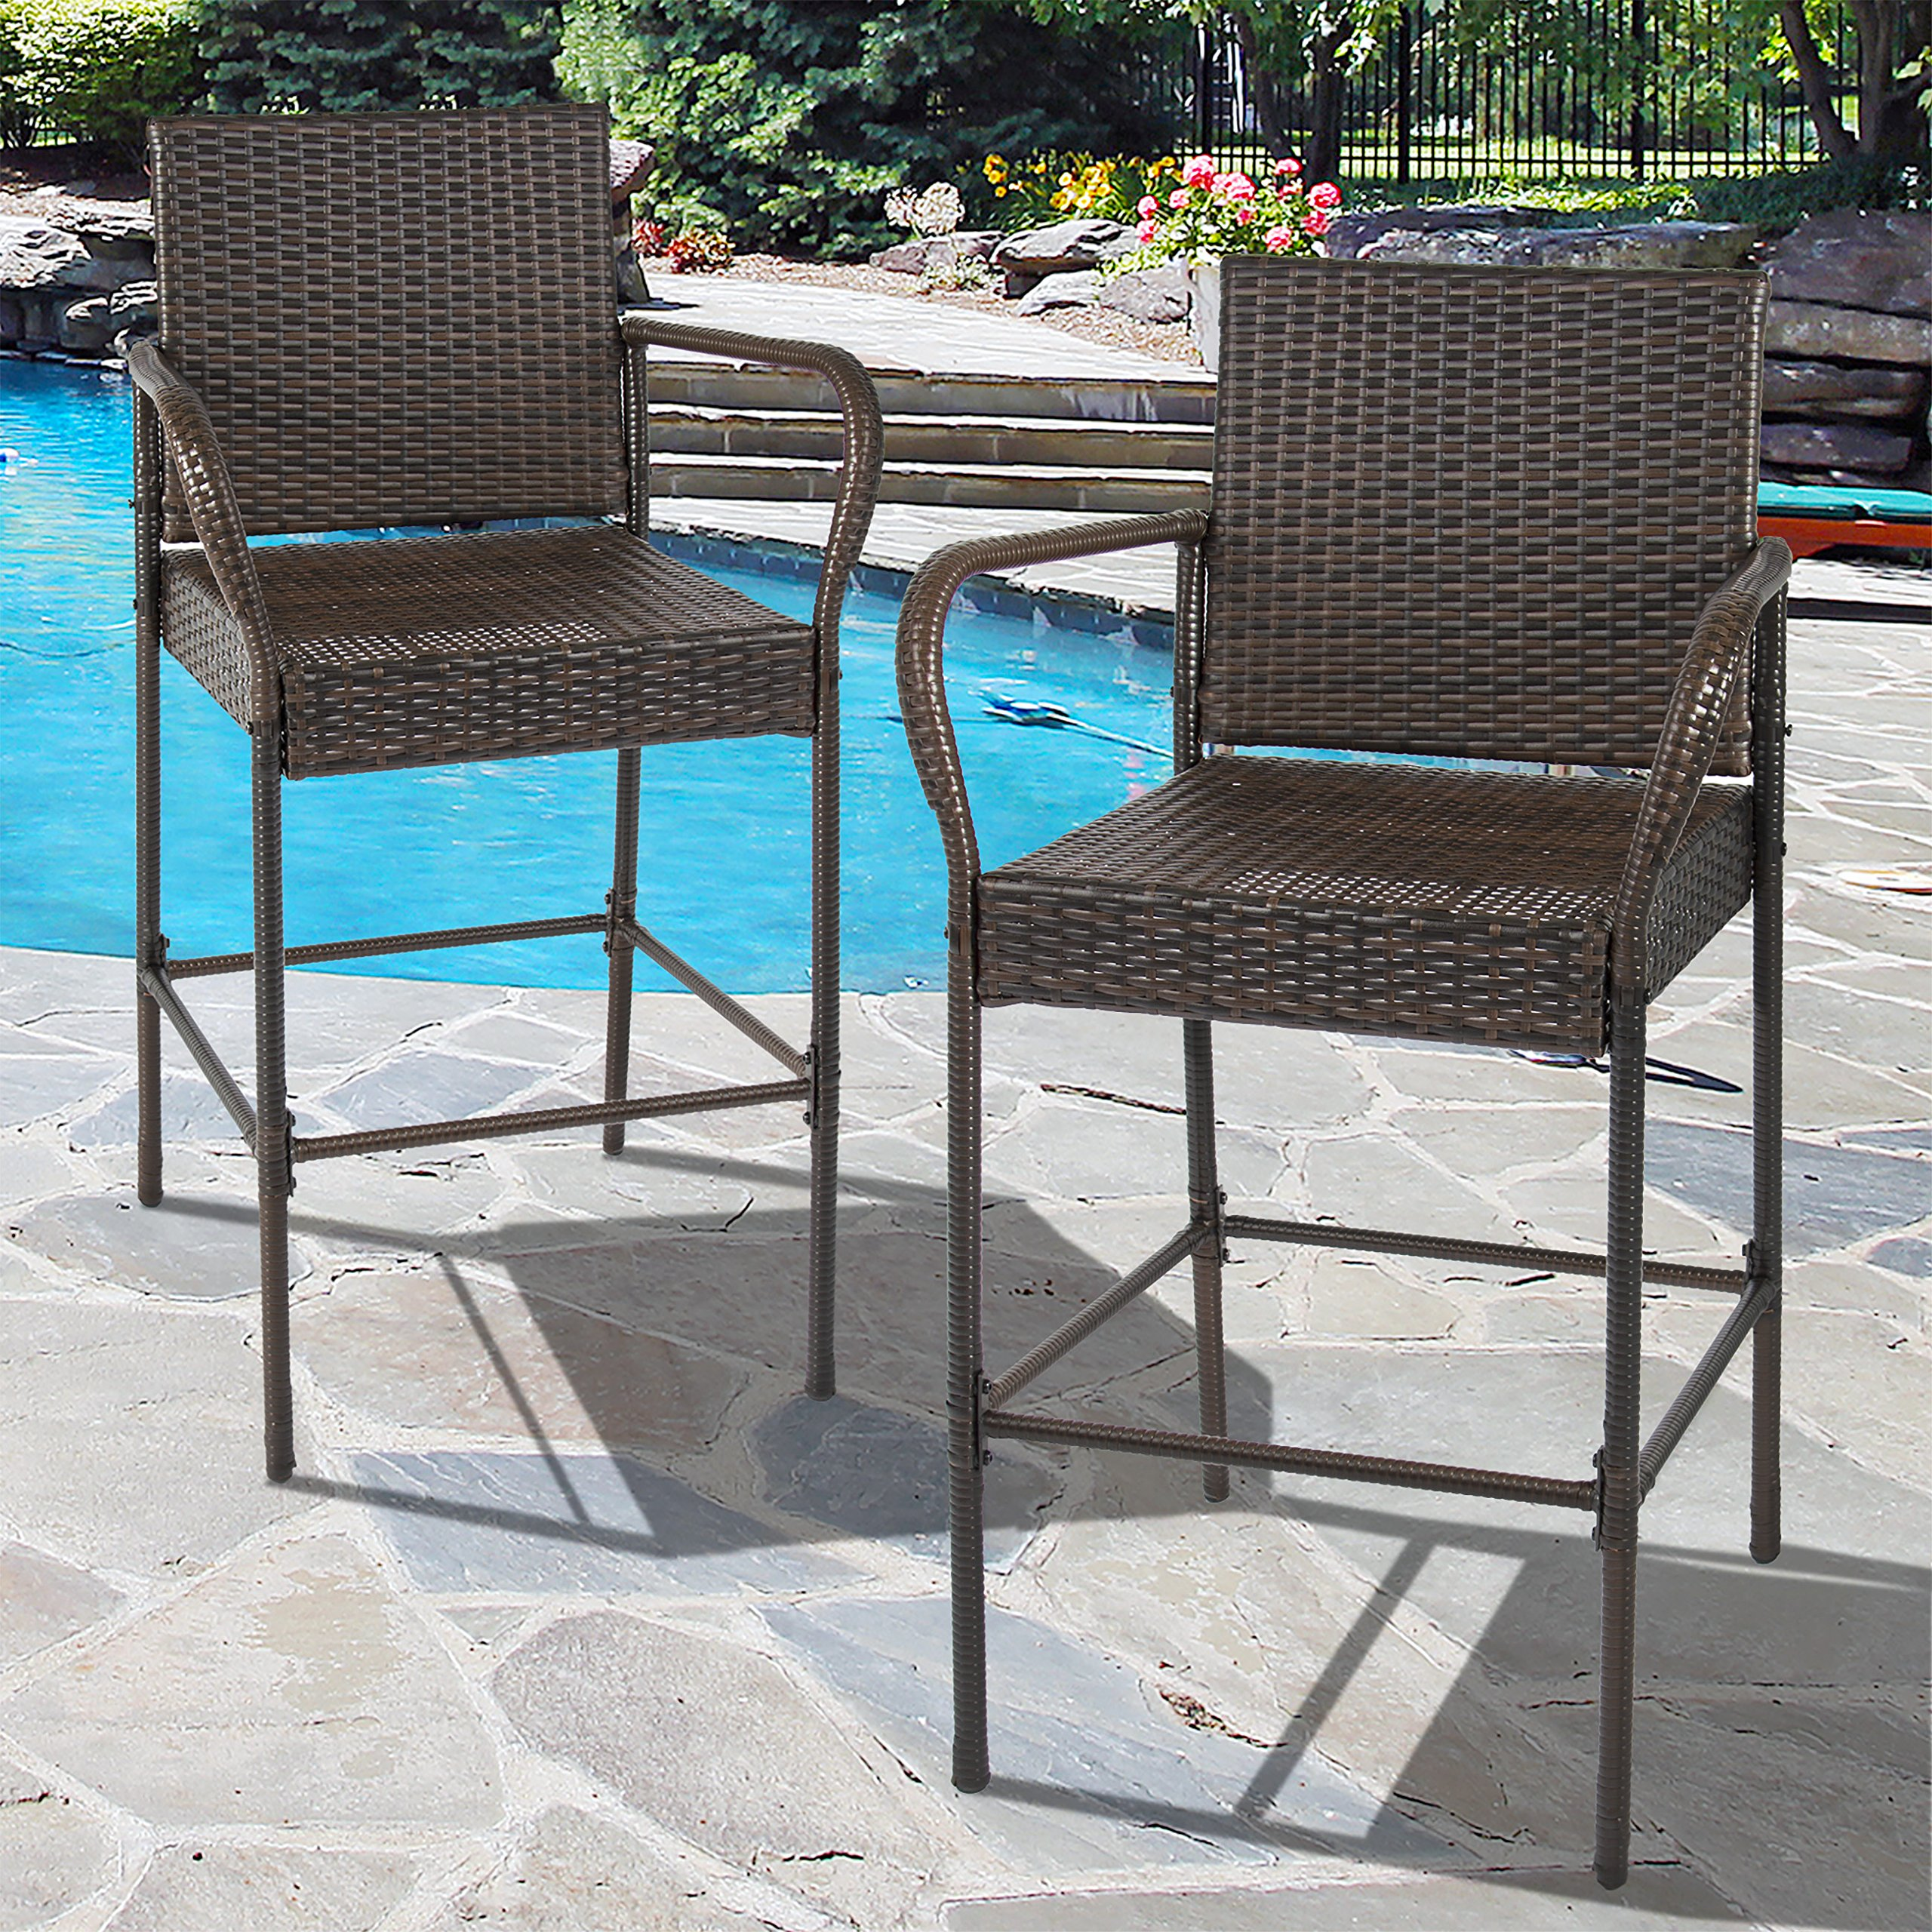 Best Choice Products Set of 2 Outdoor Brown Wicker Barstool Outdoor Patio Furniture Bar Stool by Best Choice Products